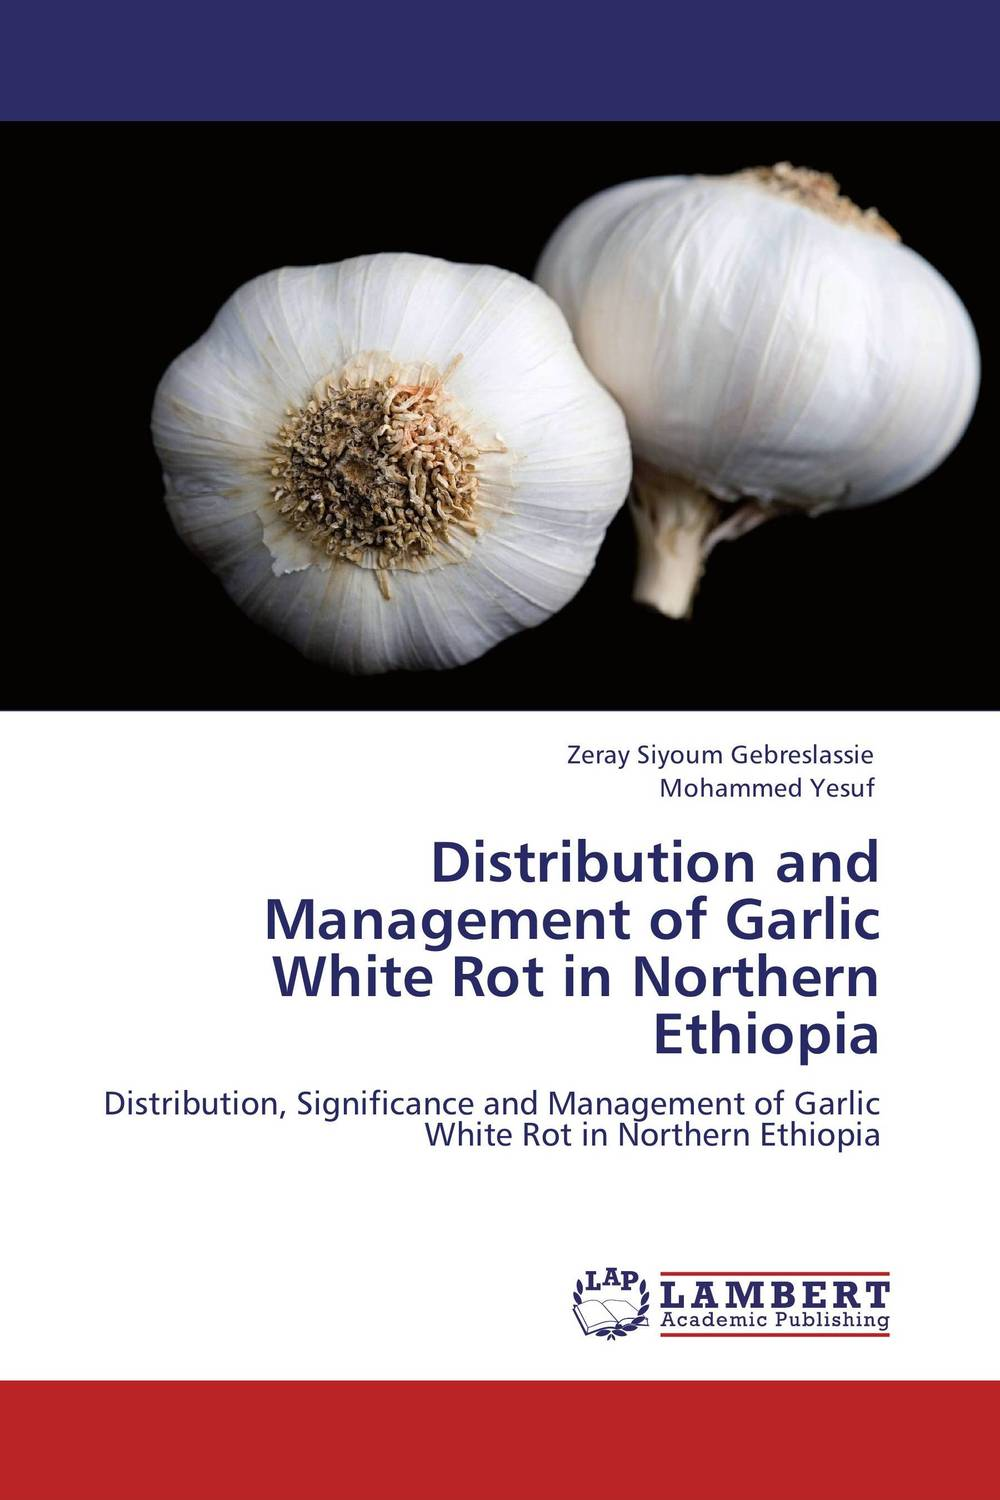 Distribution and Management of Garlic White Rot in Northern Ethiopia h n gour pankaj sharma and rakesh kaushal pathological aspects and management of root rot of groundnut